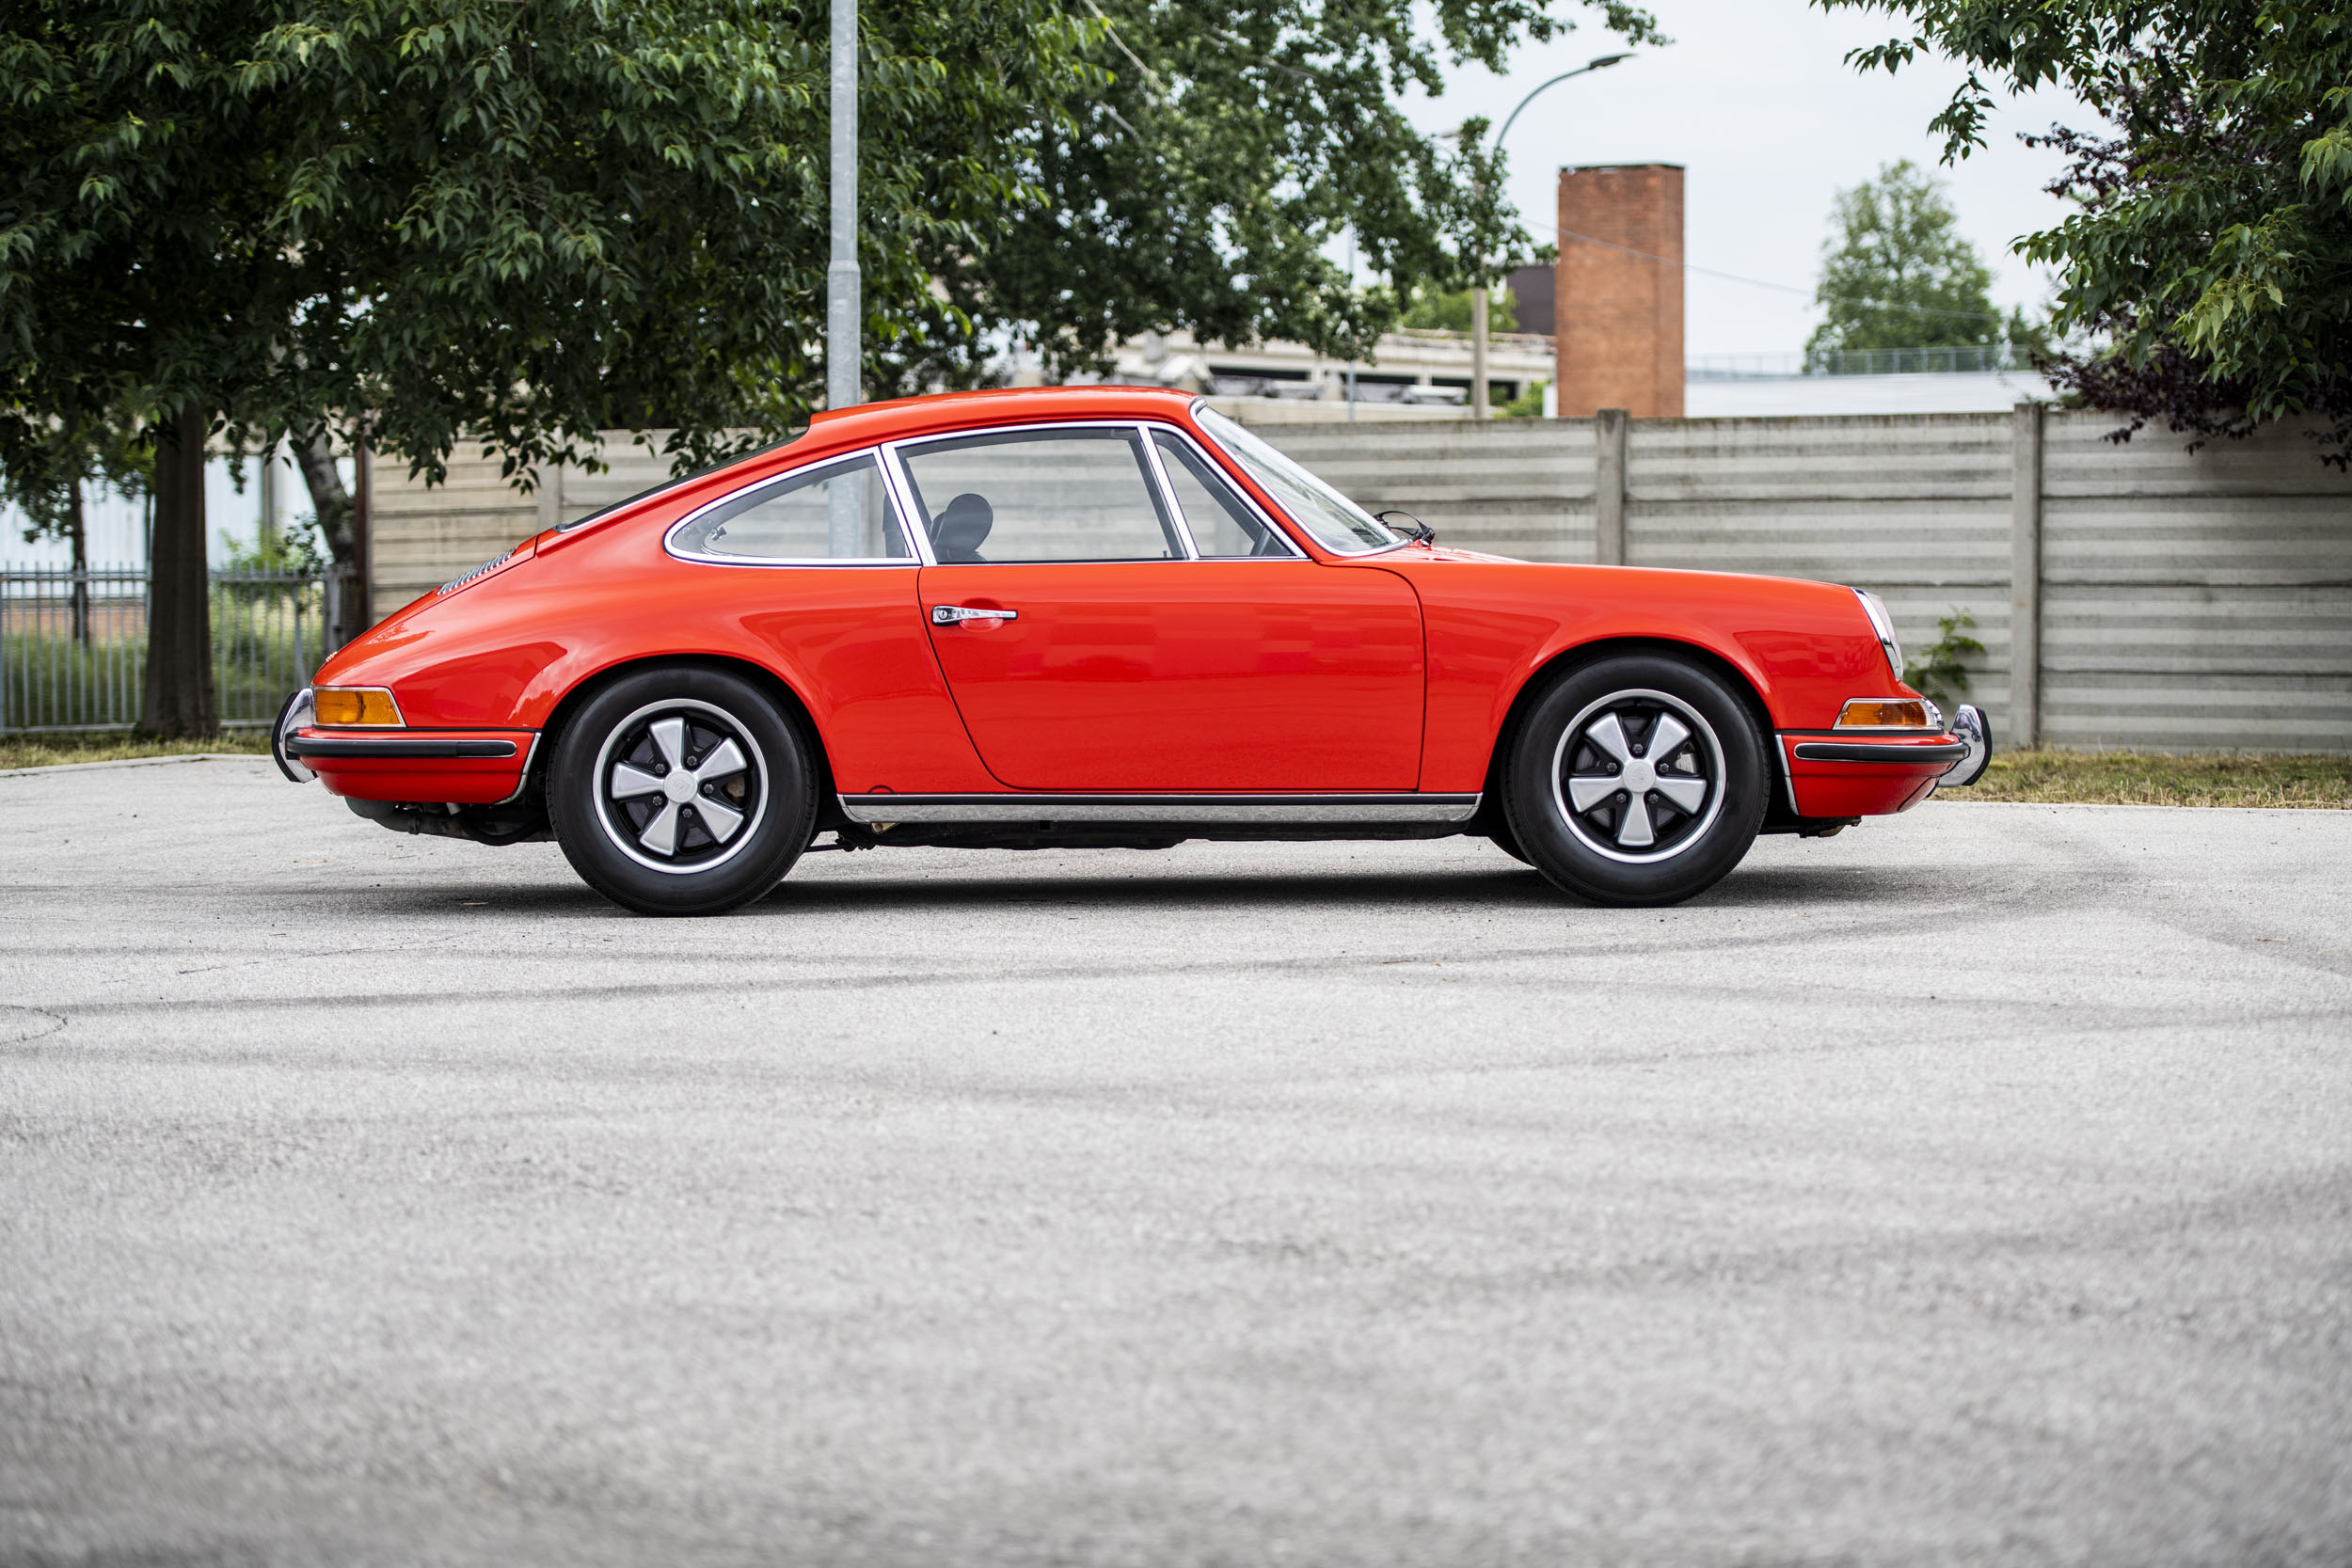 1969 Porsche 911 S 2.2 Coupé Prototype (Credit – Remi Dargegen ©2020 Courtesy of RM Sotheby's) (2)